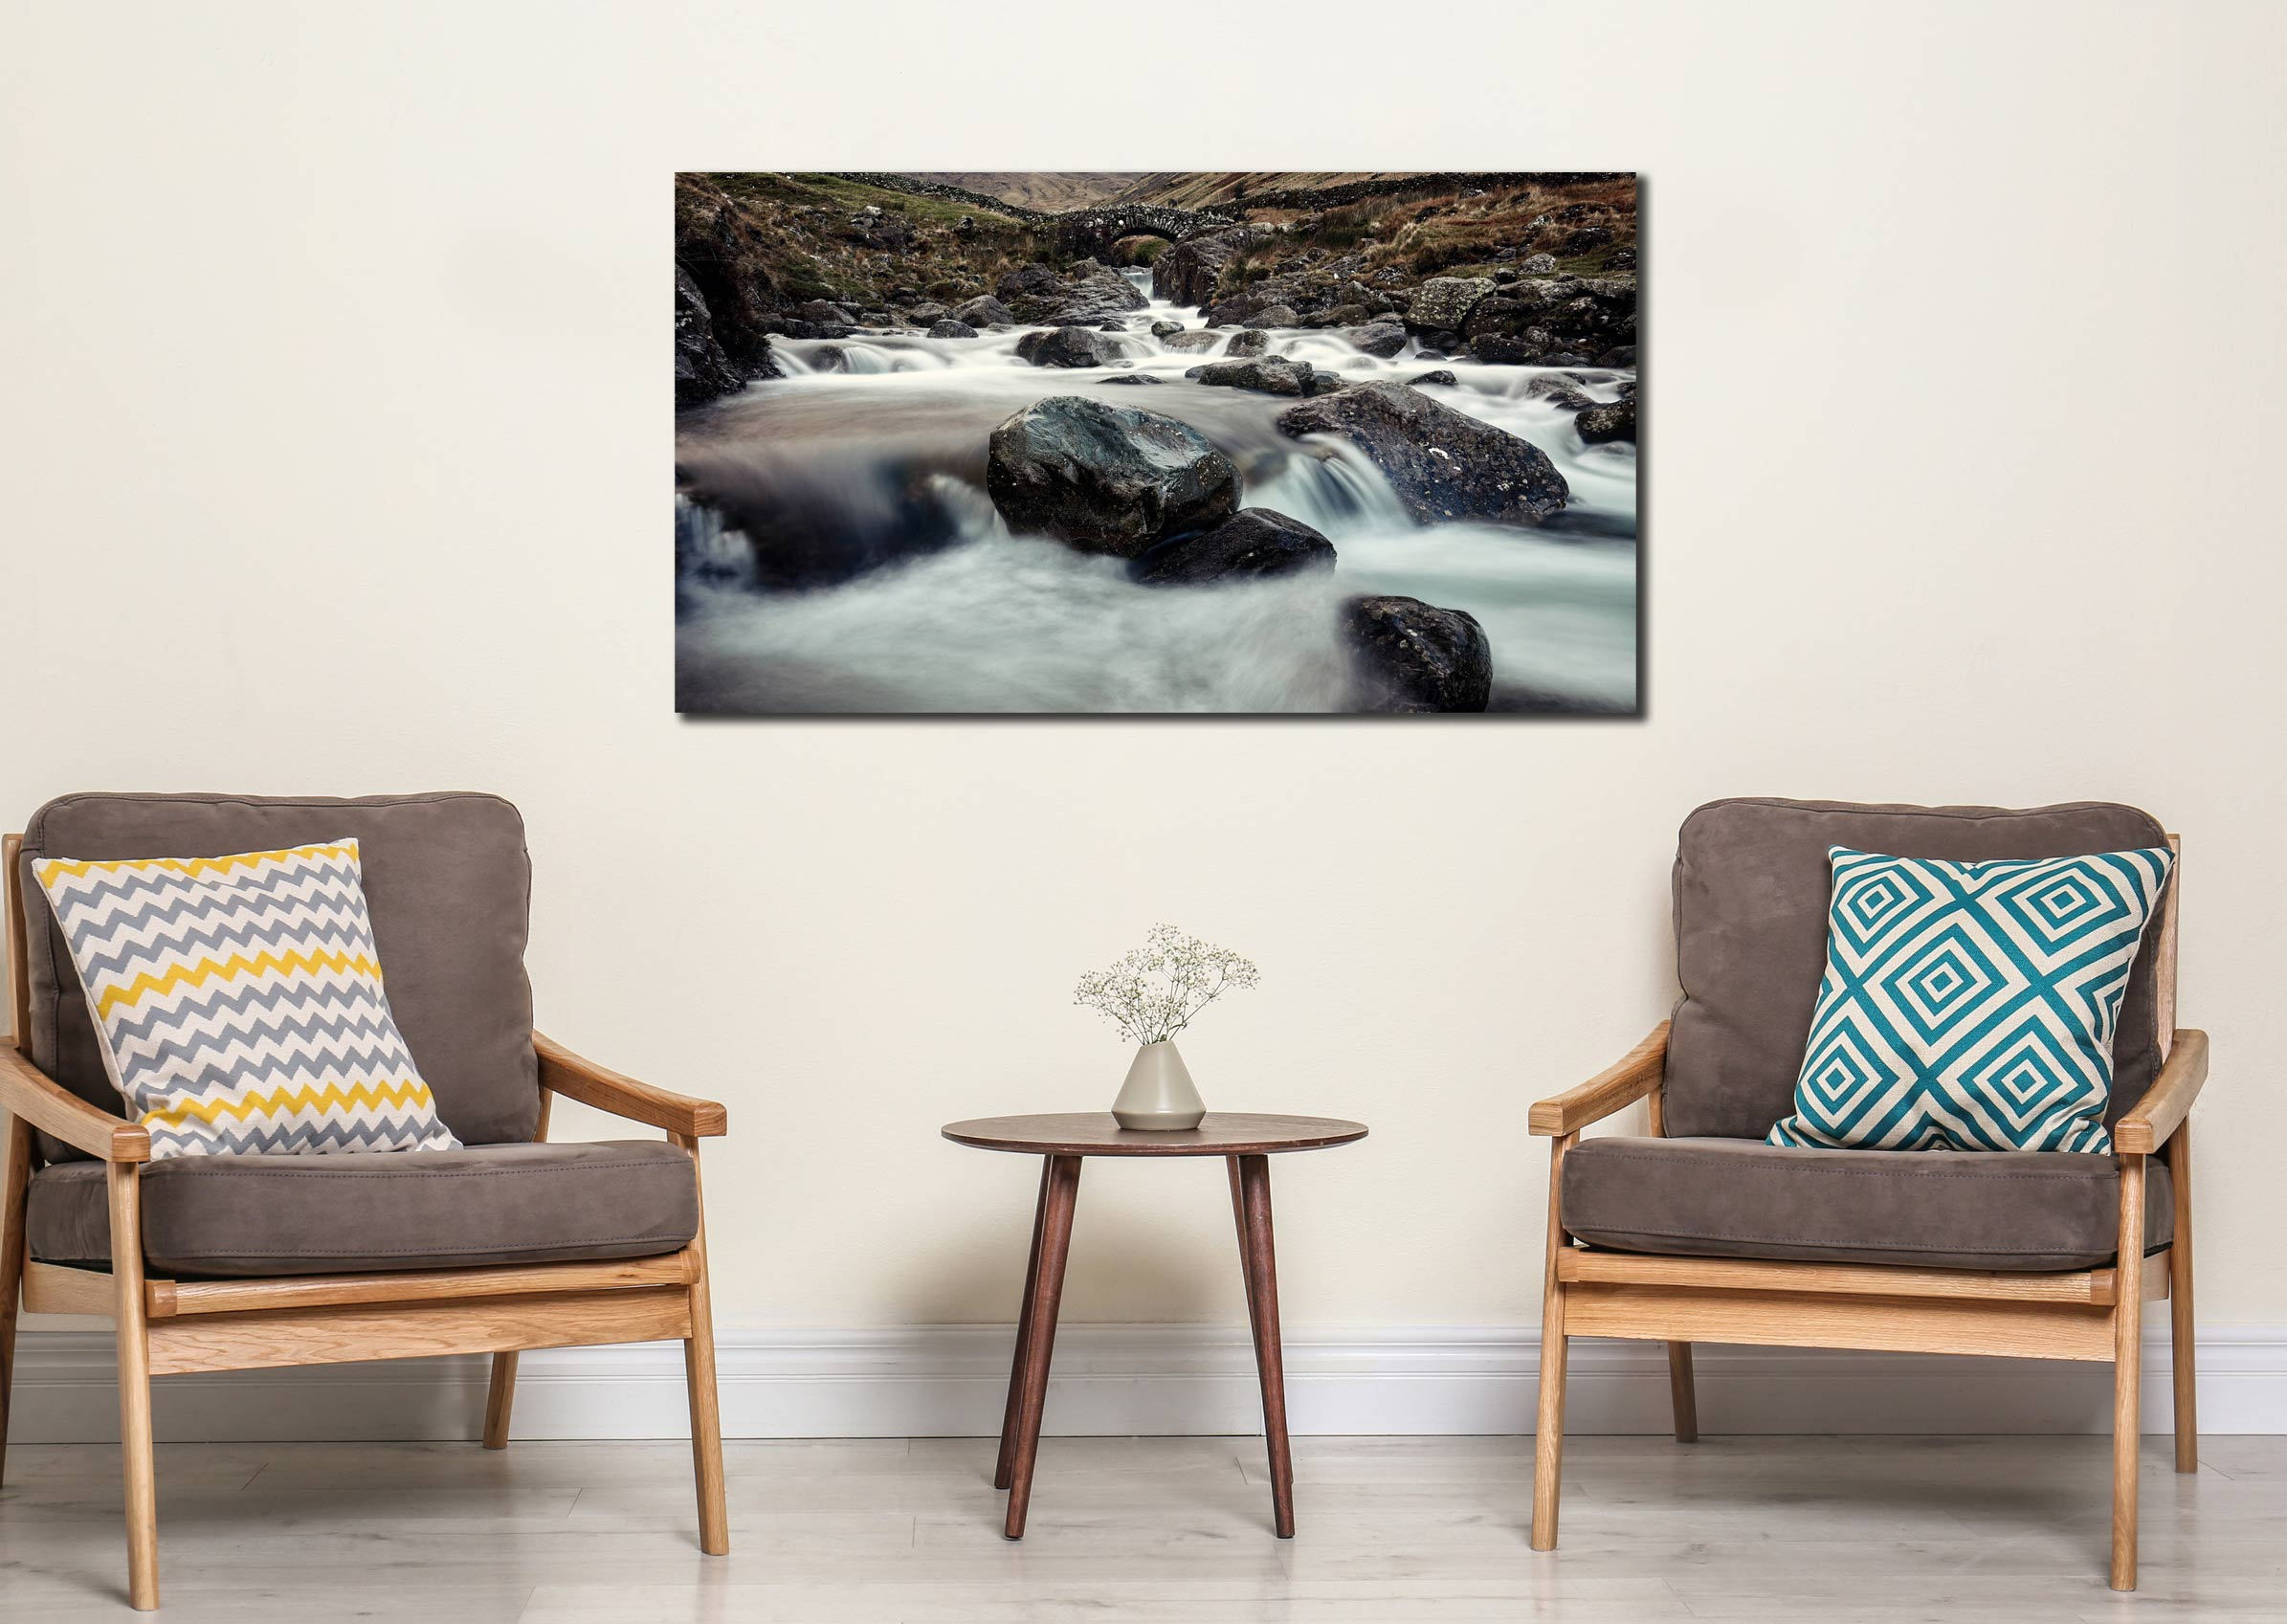 Grains Gill and Stockley Bridge - Print Aluminium Backing With Acrylic Glazing on Wall